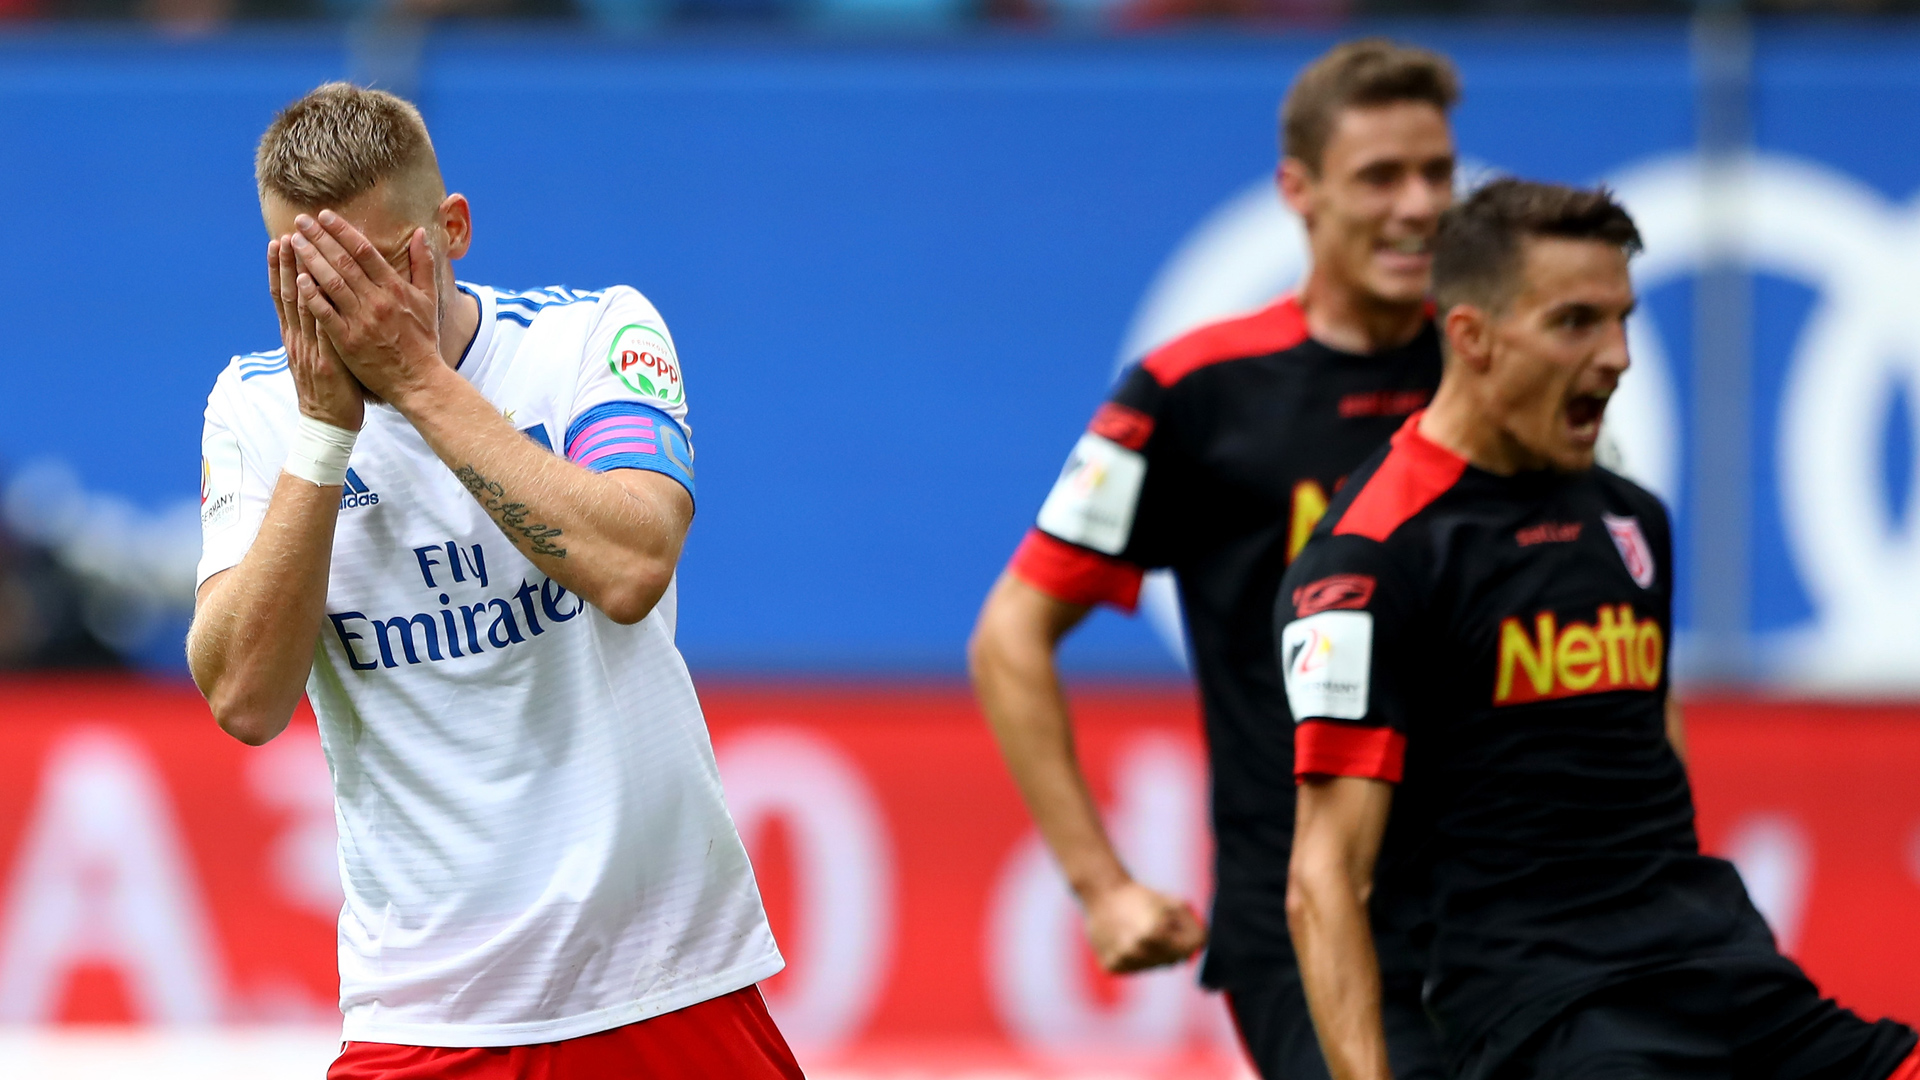 Hsv Gegen Greuther FГјrth